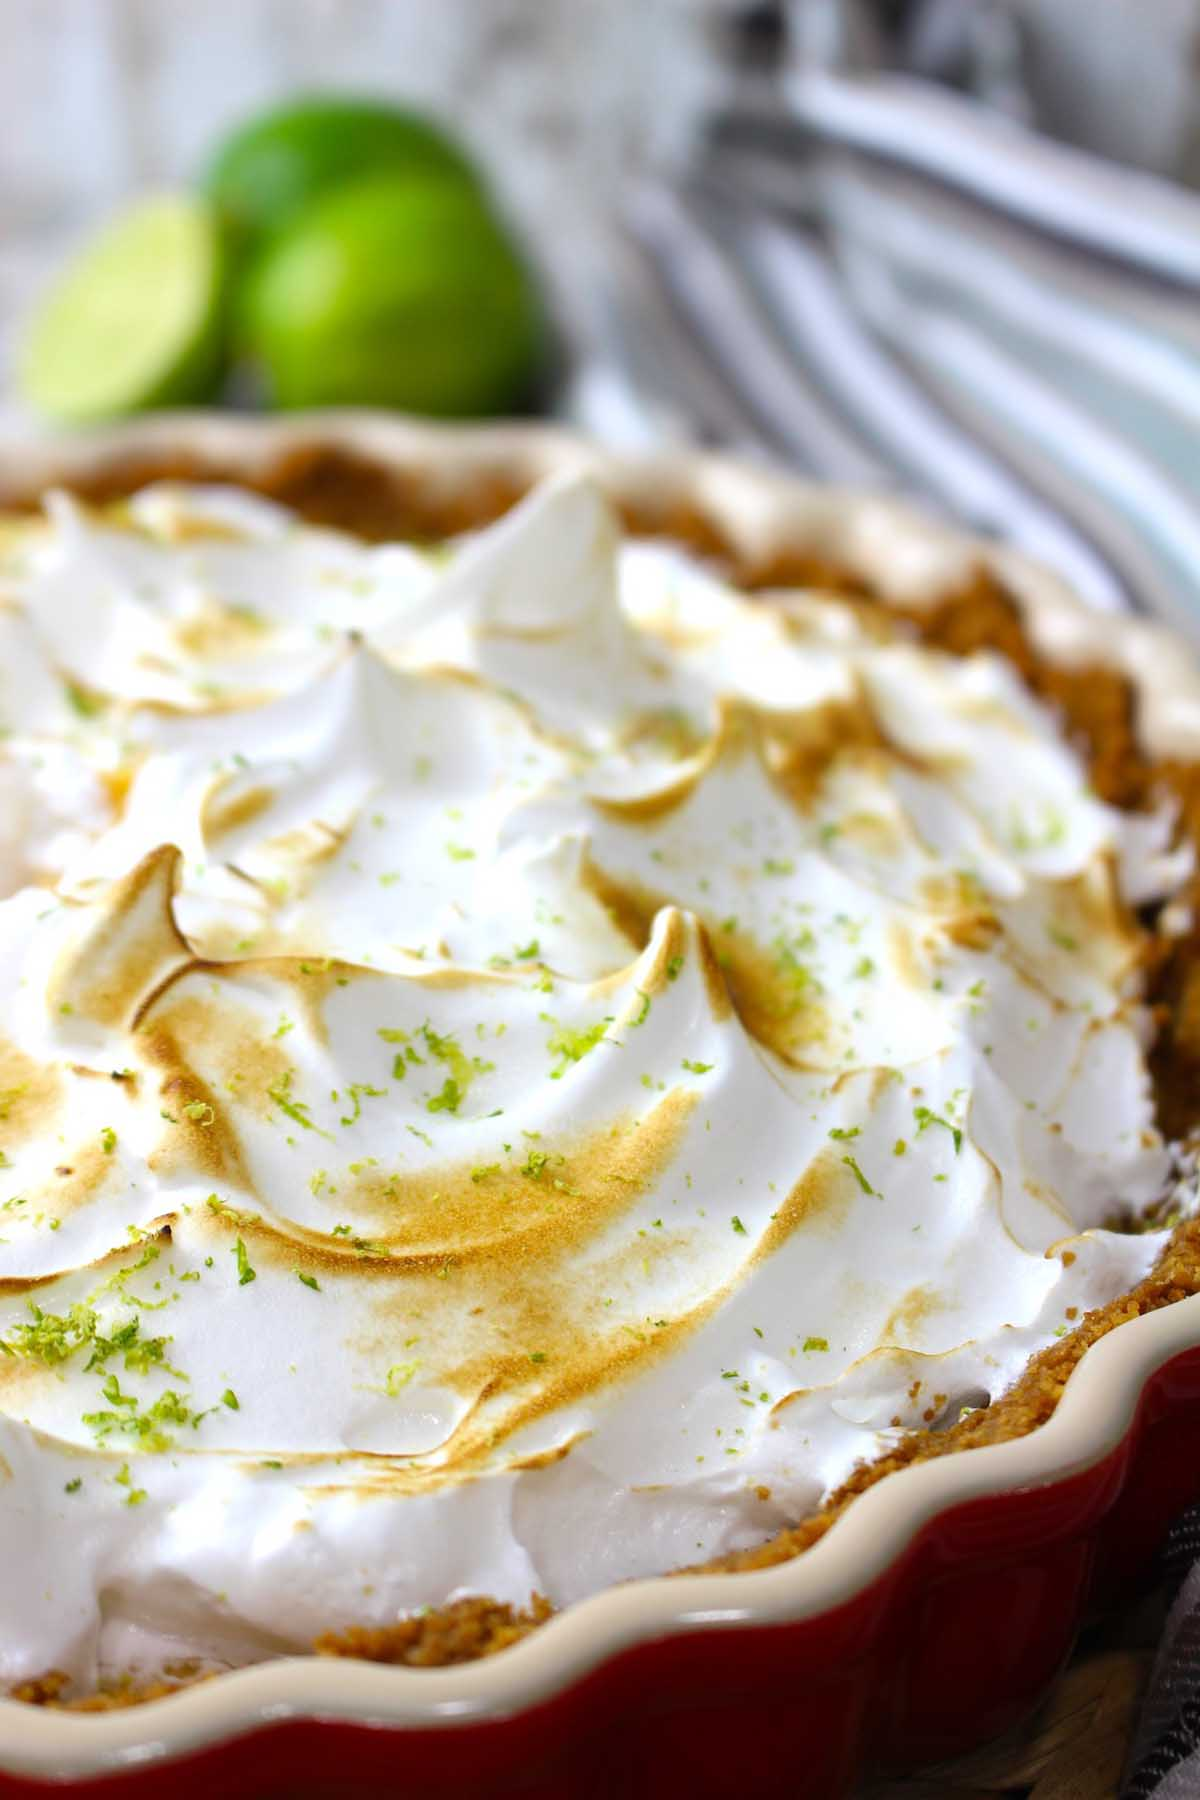 Tarta de lima y merengue sin lactosa. Key lime pie